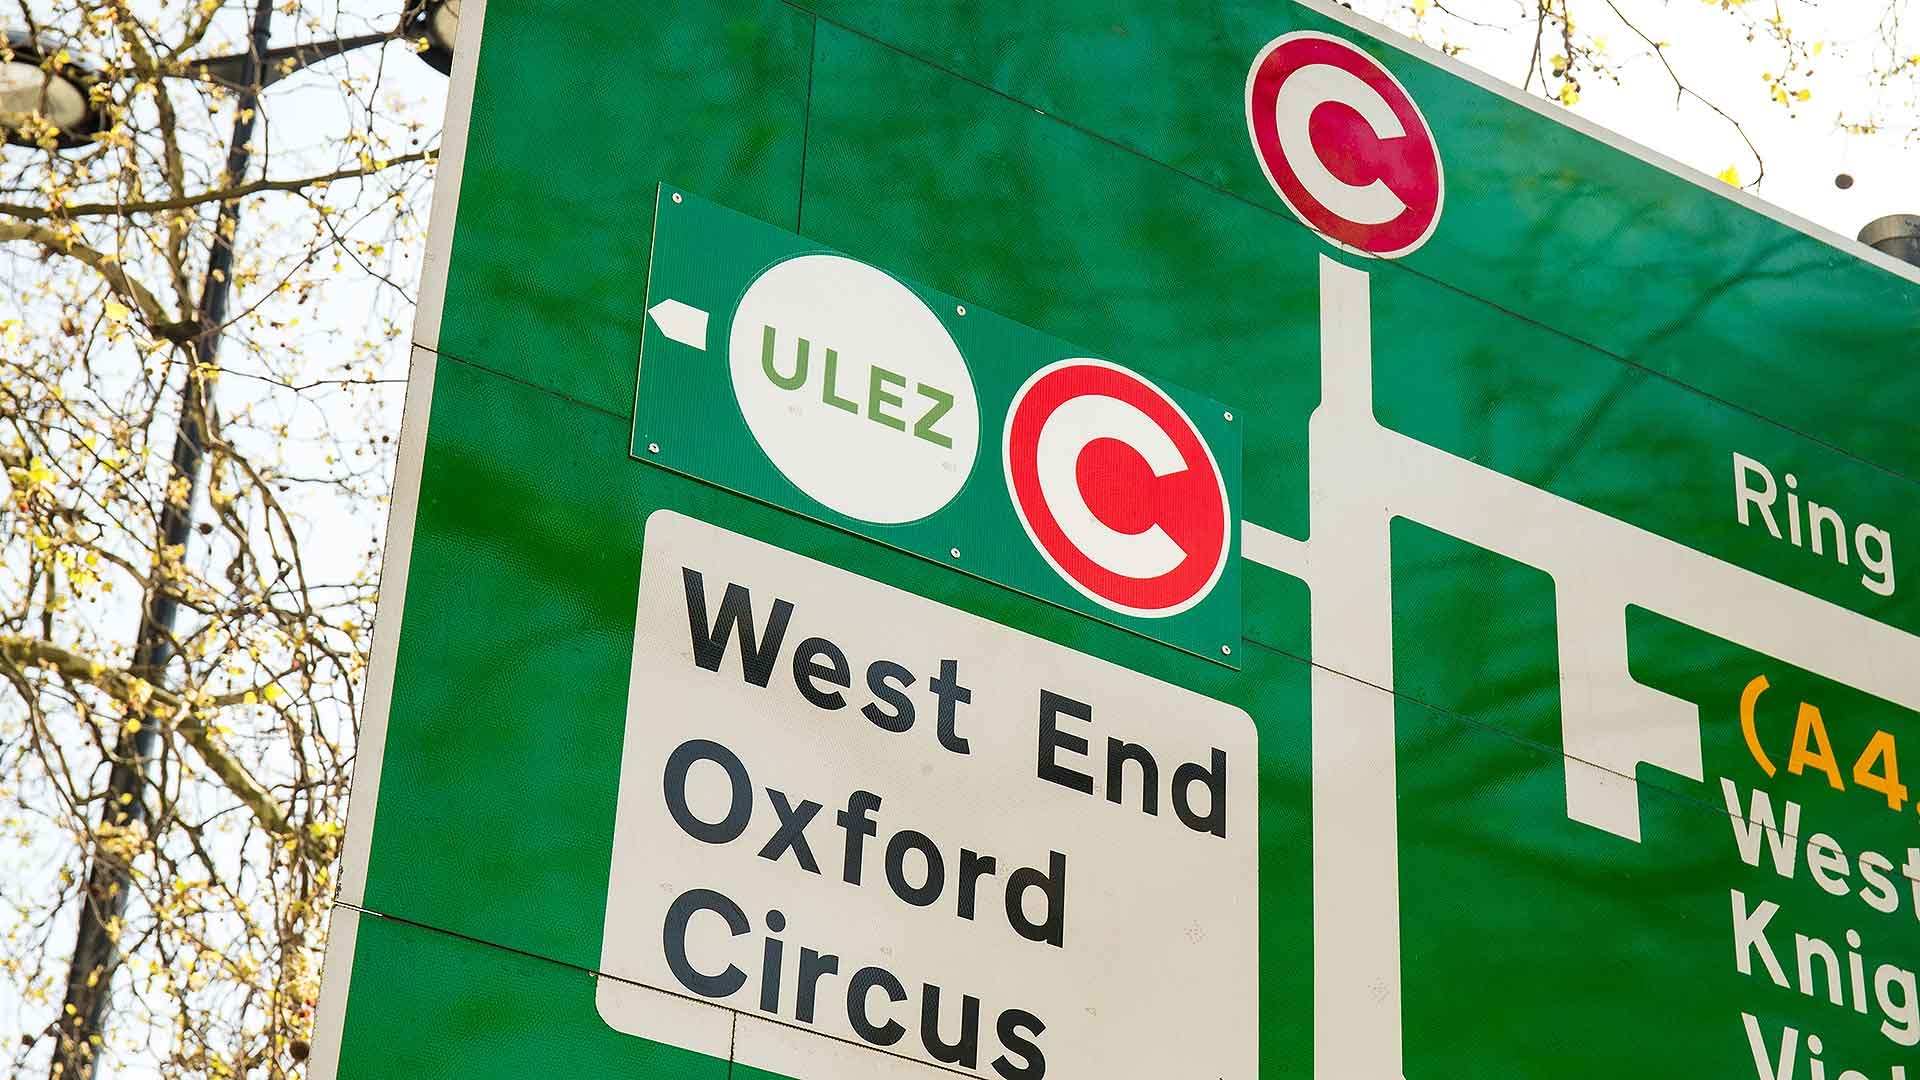 London ULEZ and Congestion Charge logo on road sign